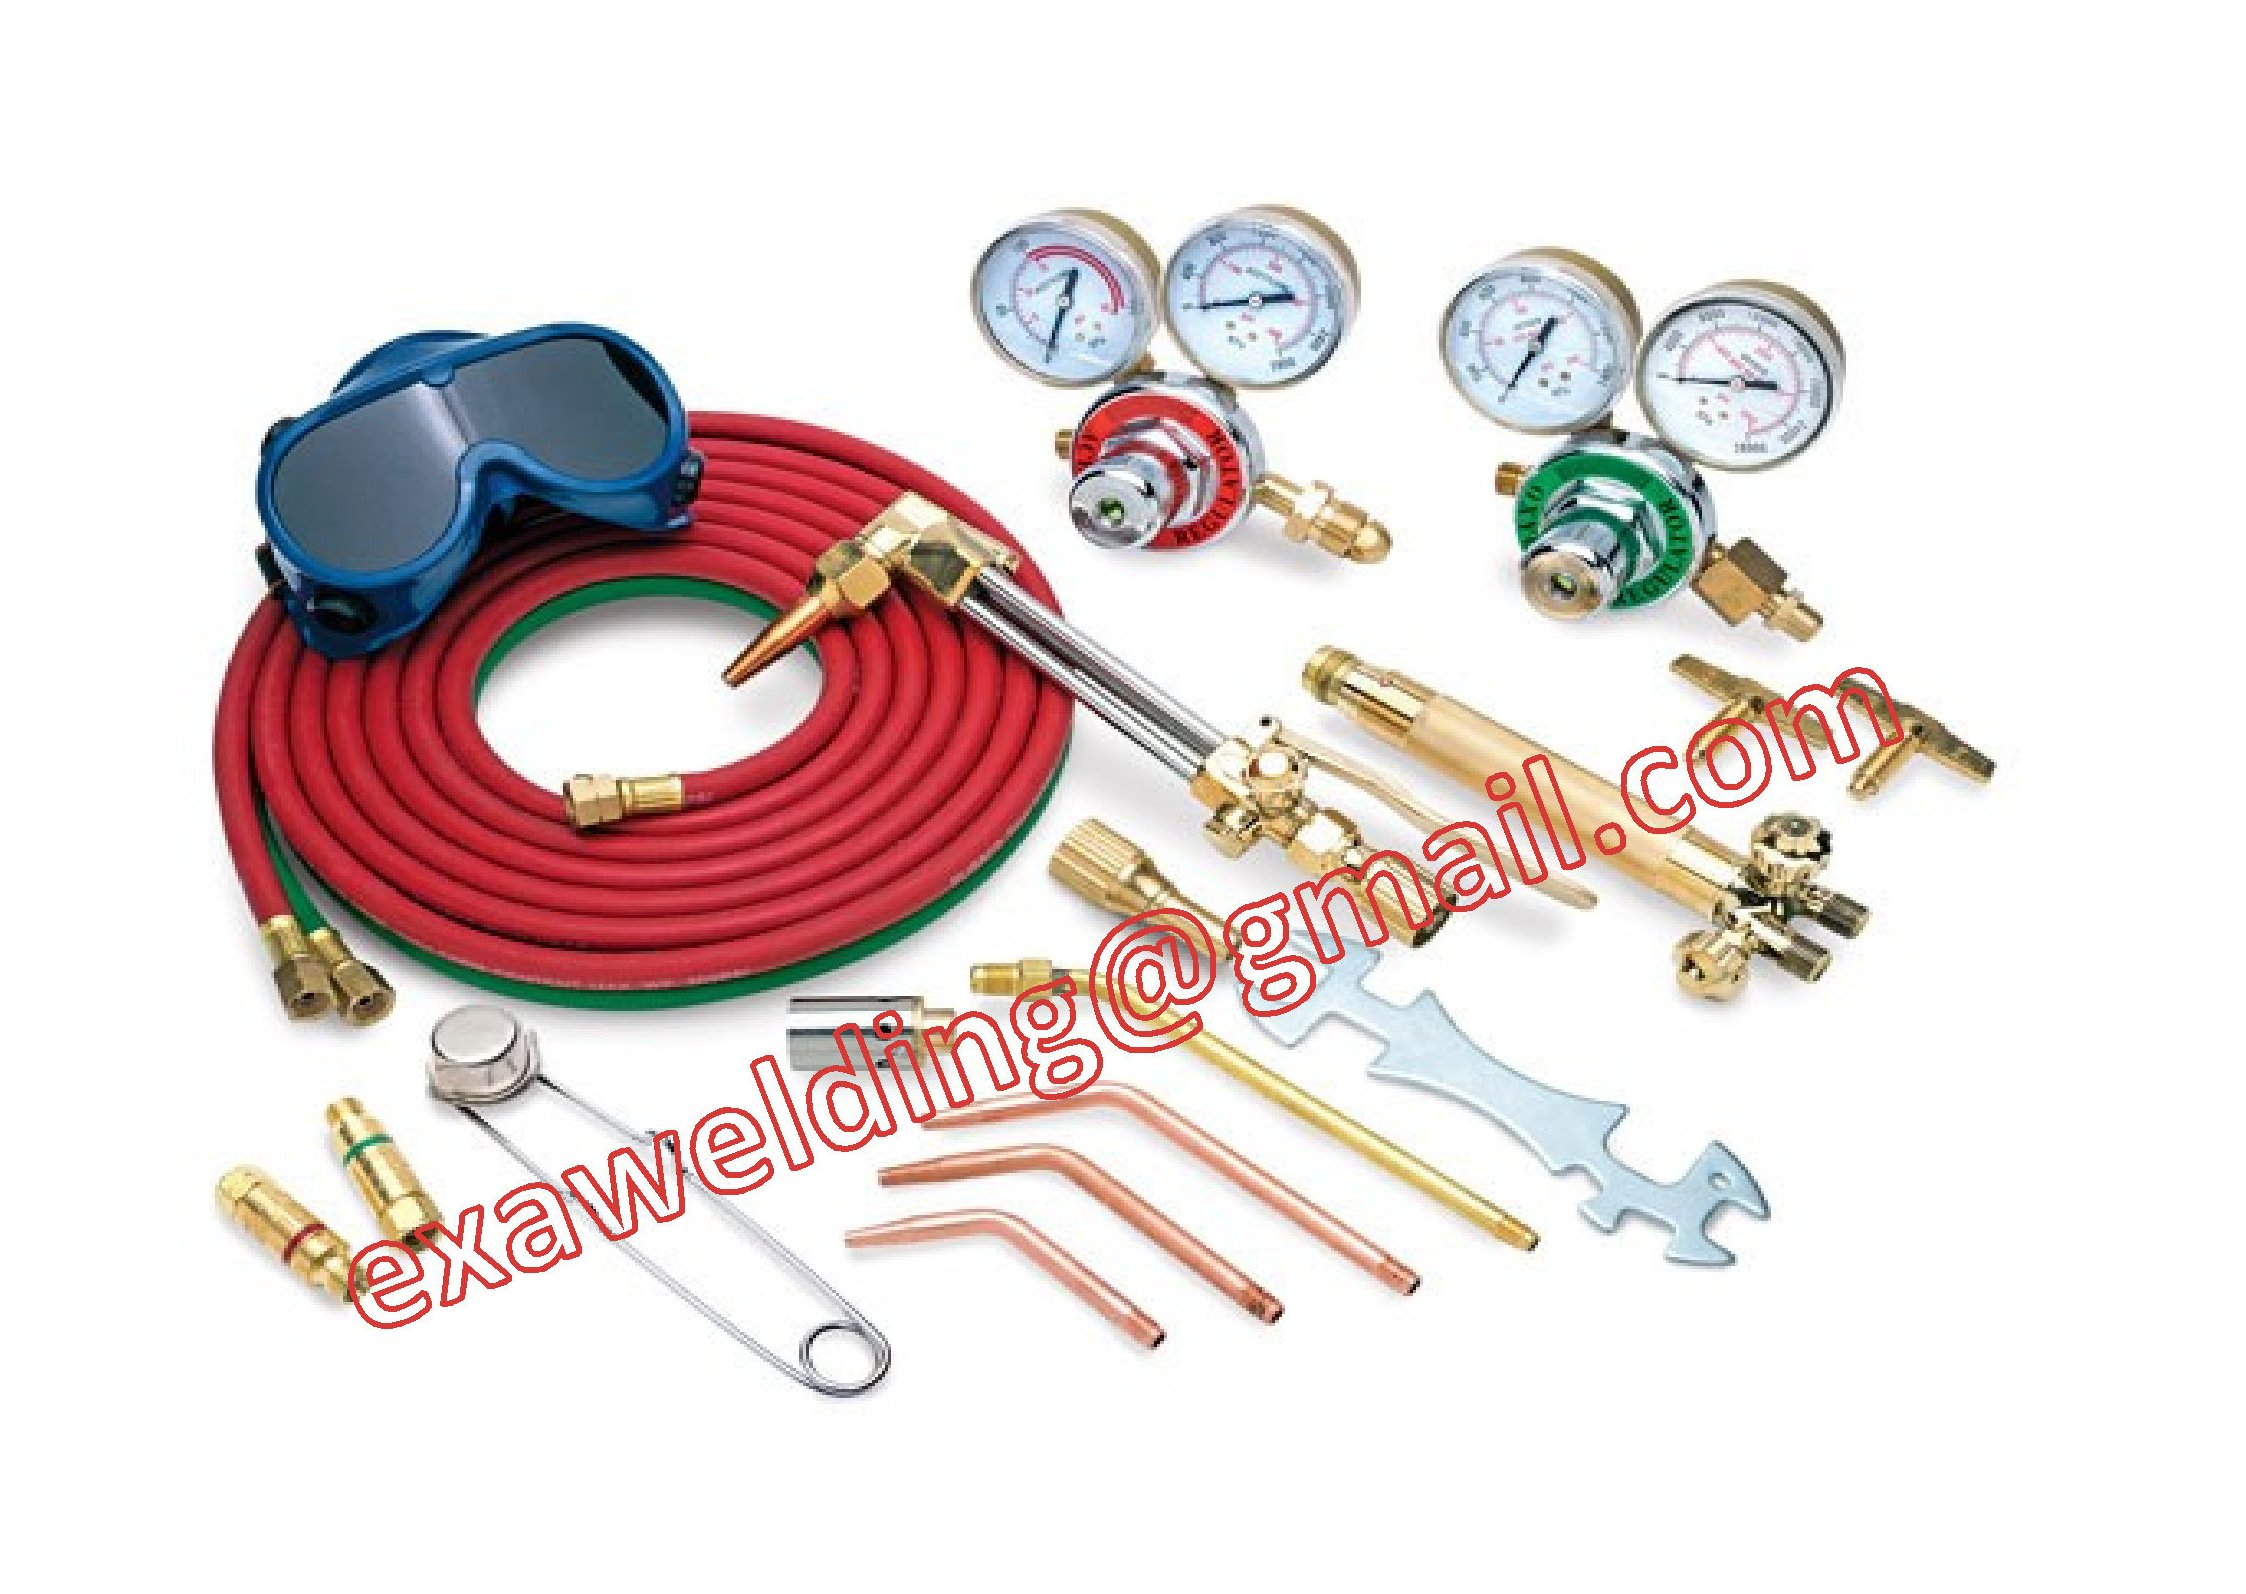 GAS CUTTING ACCESSORIES